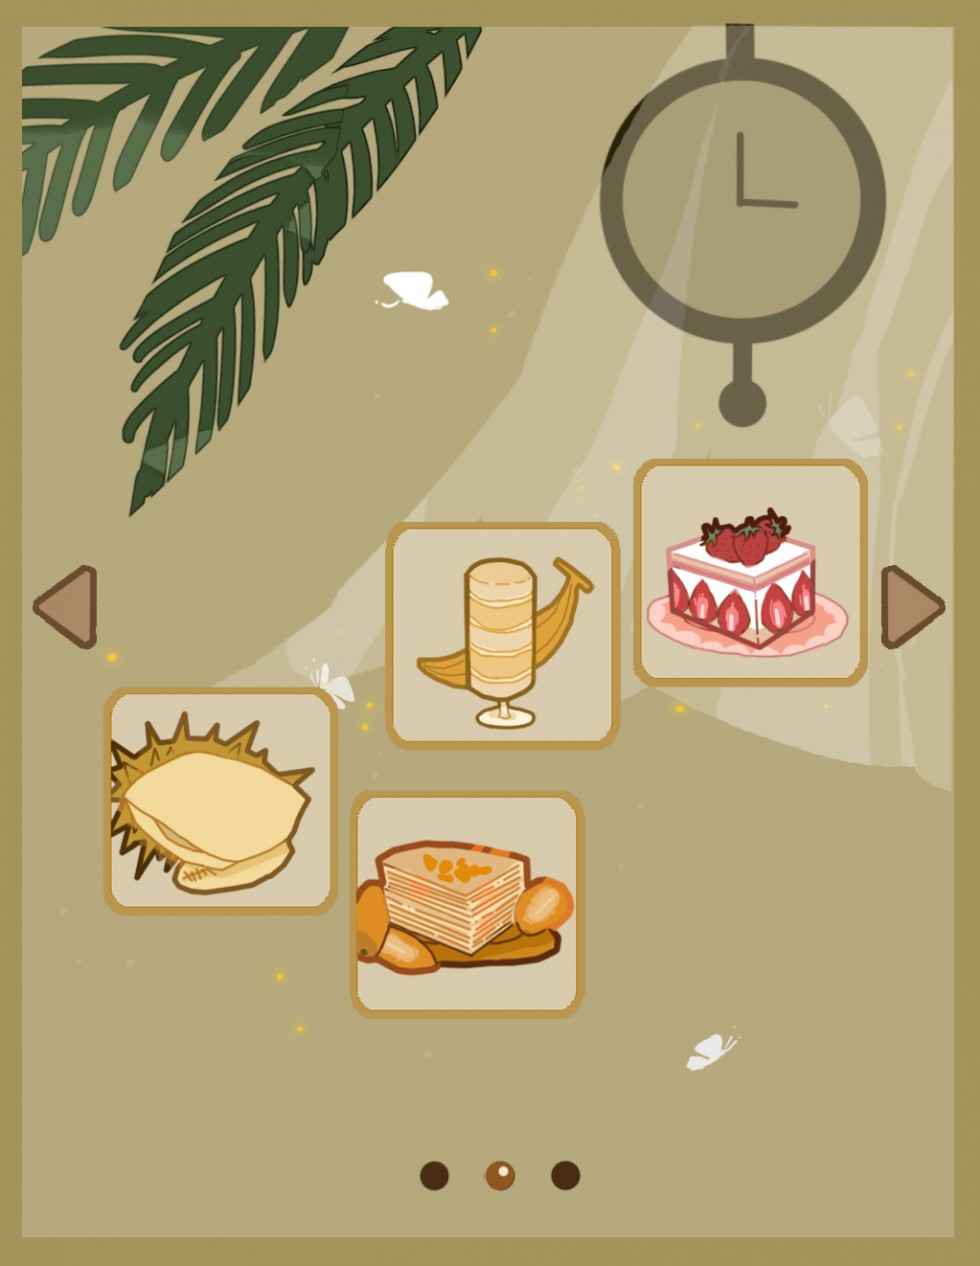 A cooking app for kids. (Animation)